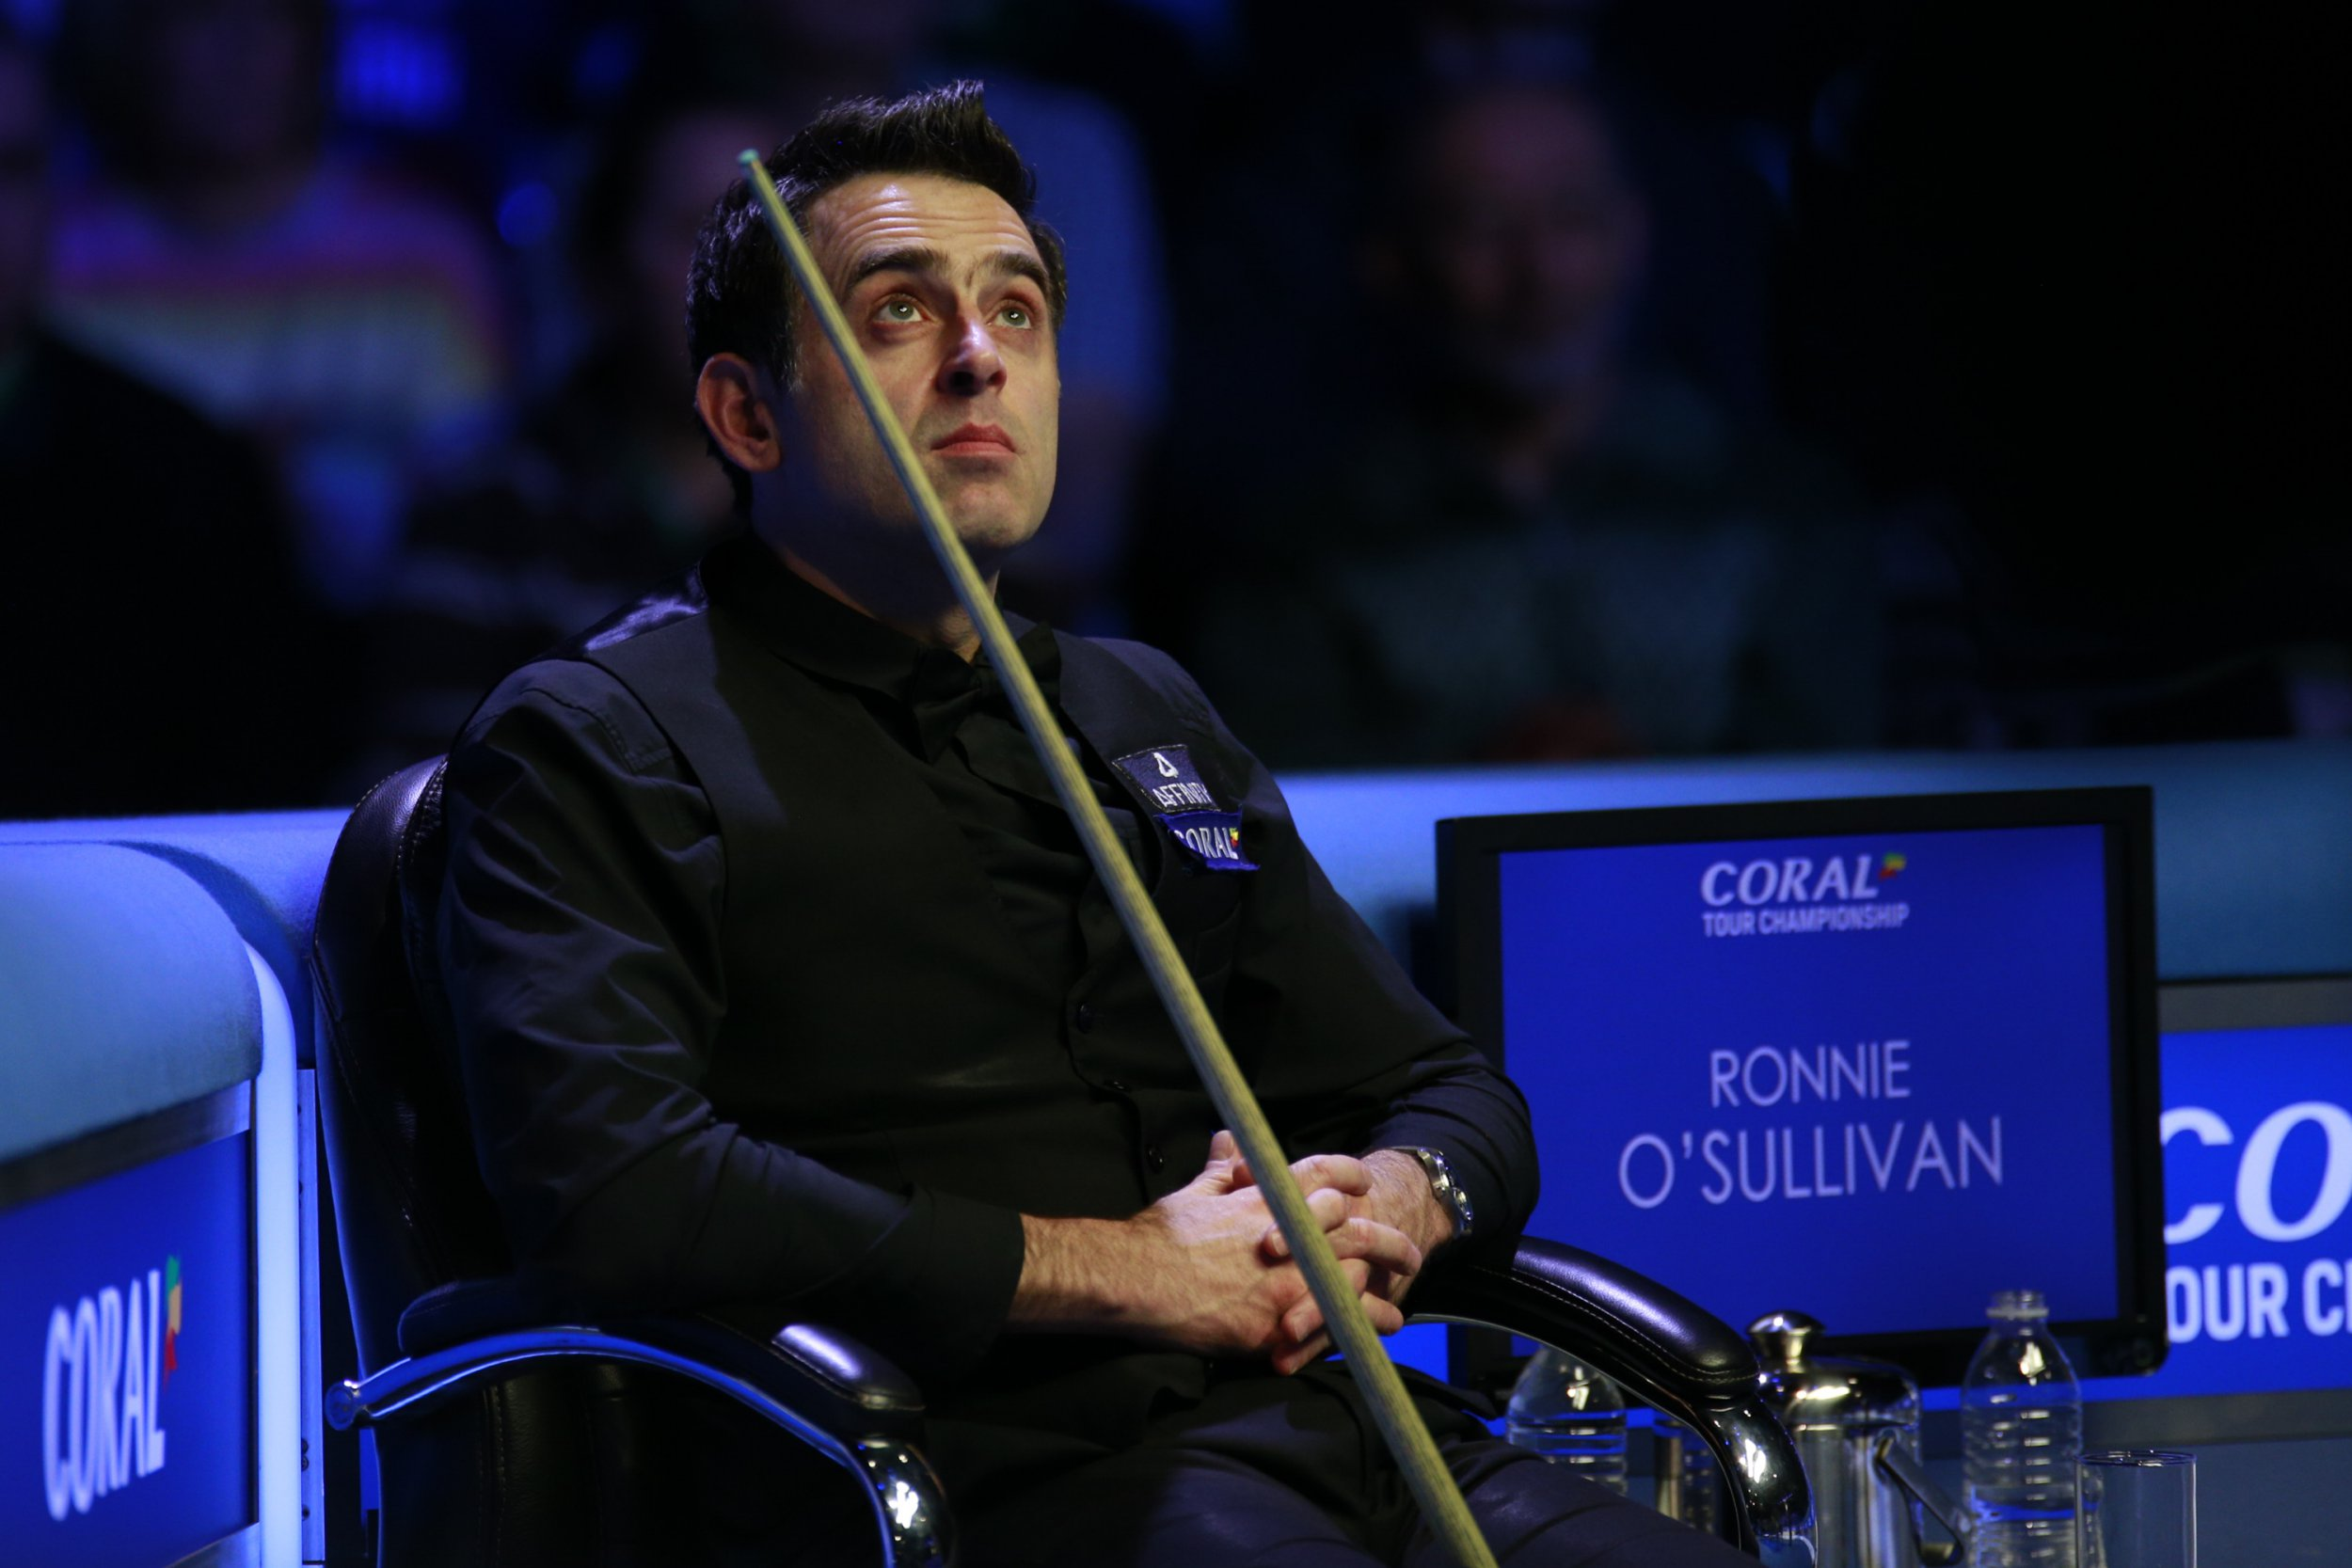 'There's a reason Ronnie O'Sullivan hasn't won the Snooker World Championship for six years', says Matt Selt